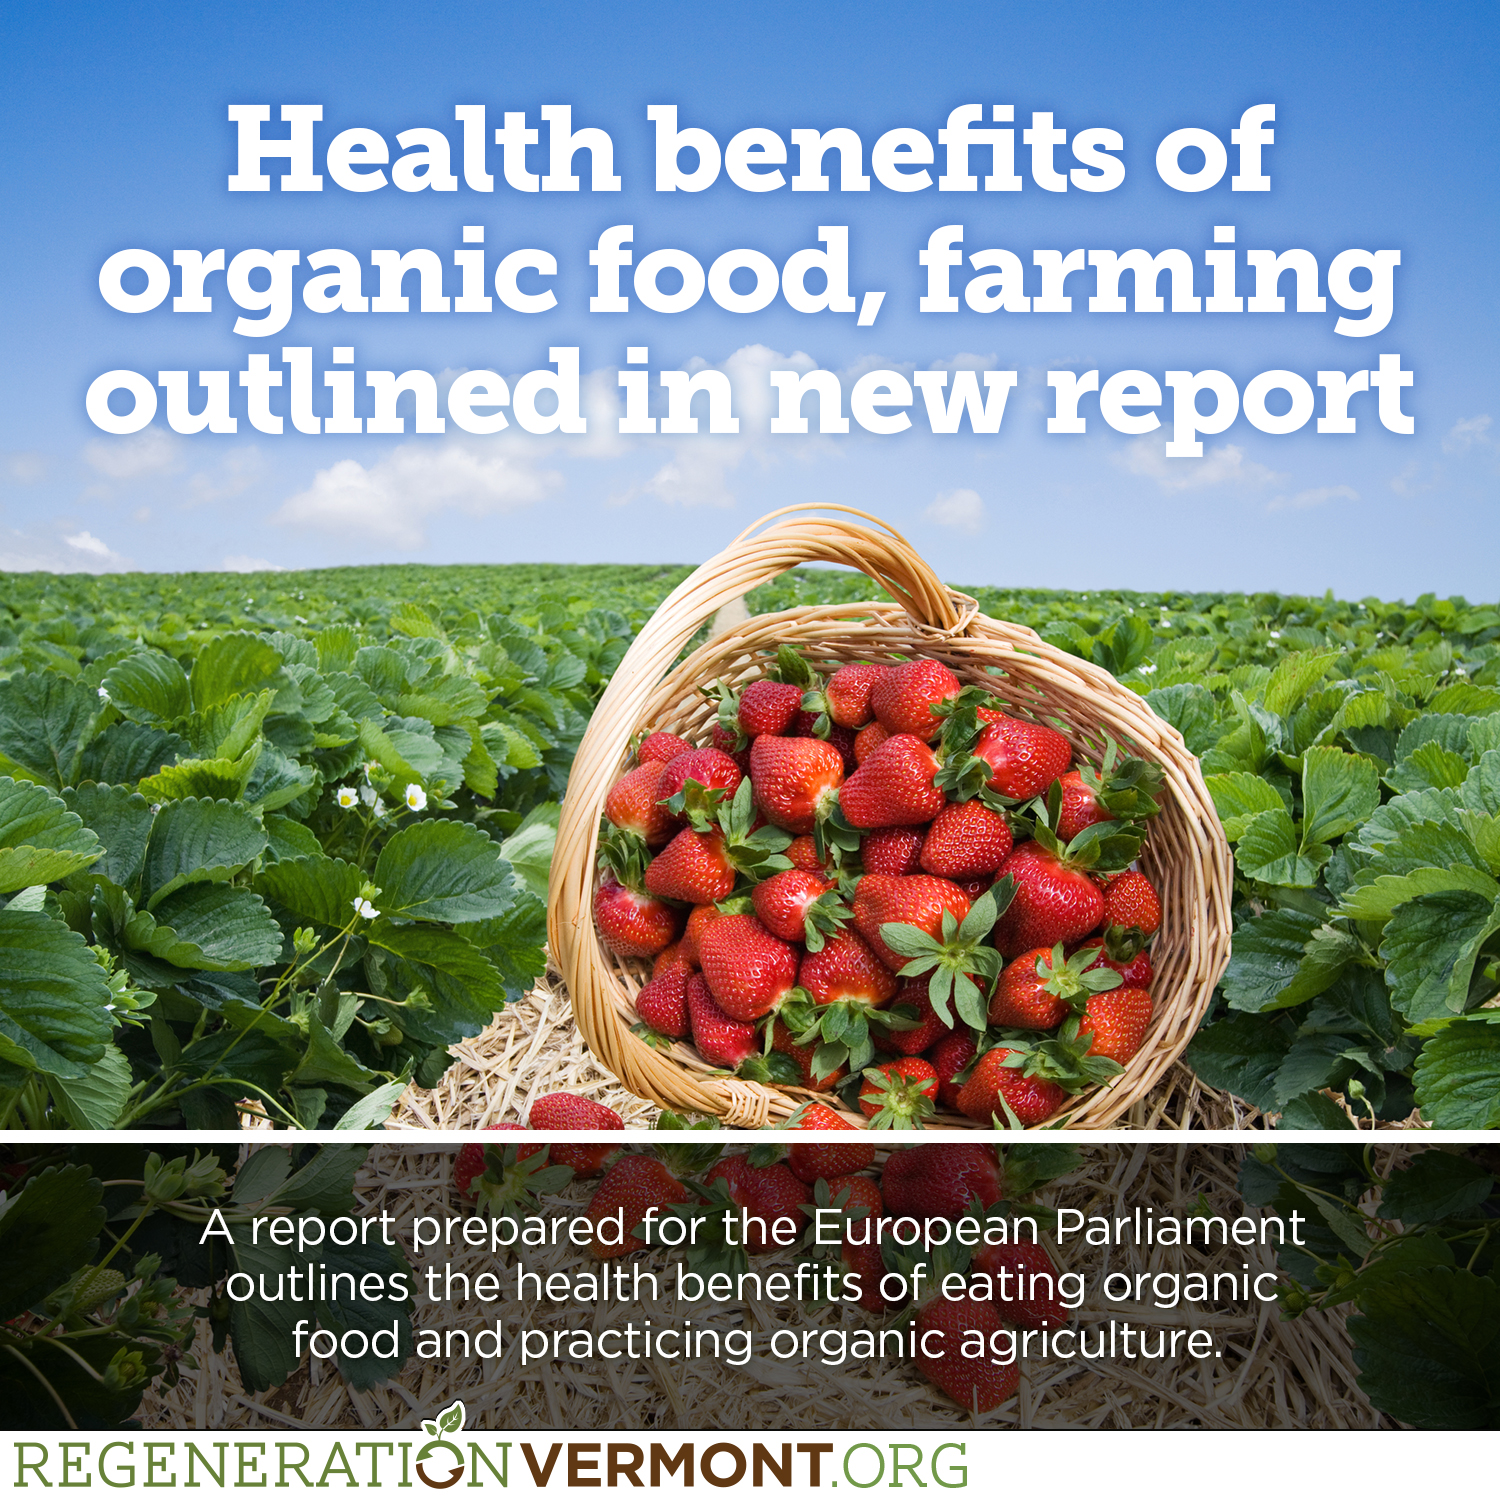 Health benefits of organic food, farming outlined in new